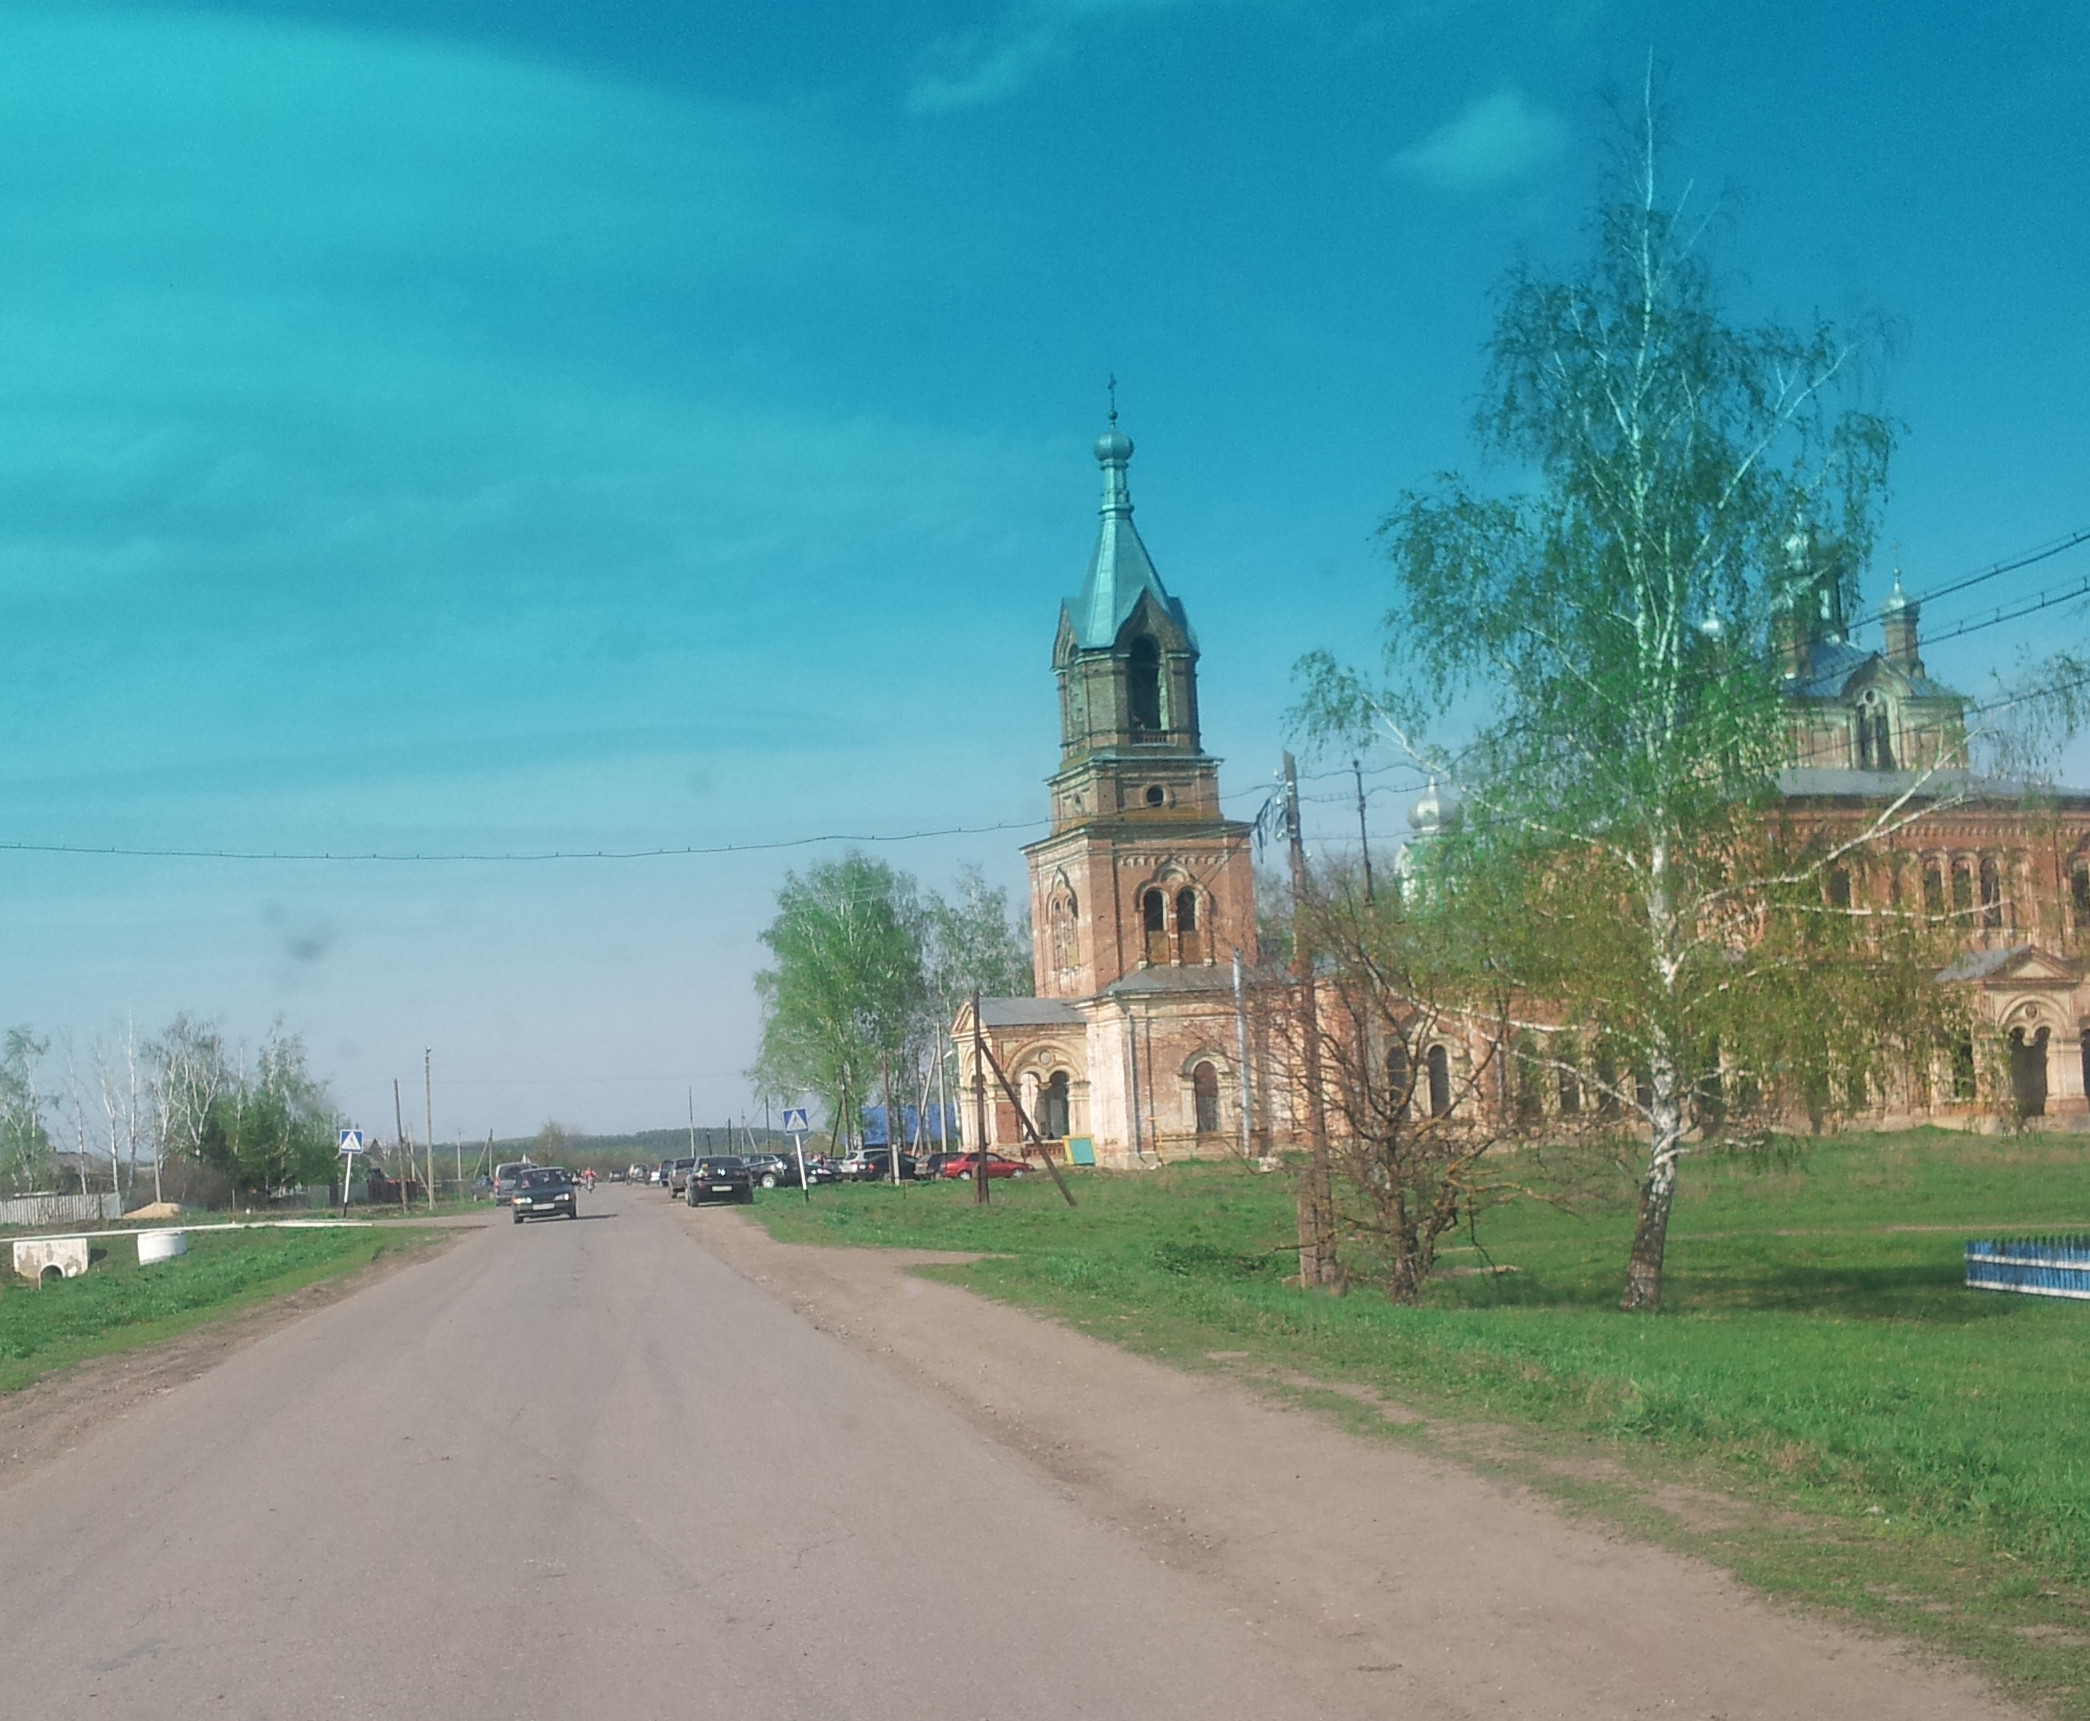 It is Easter in Russia: May 5th, 2013…